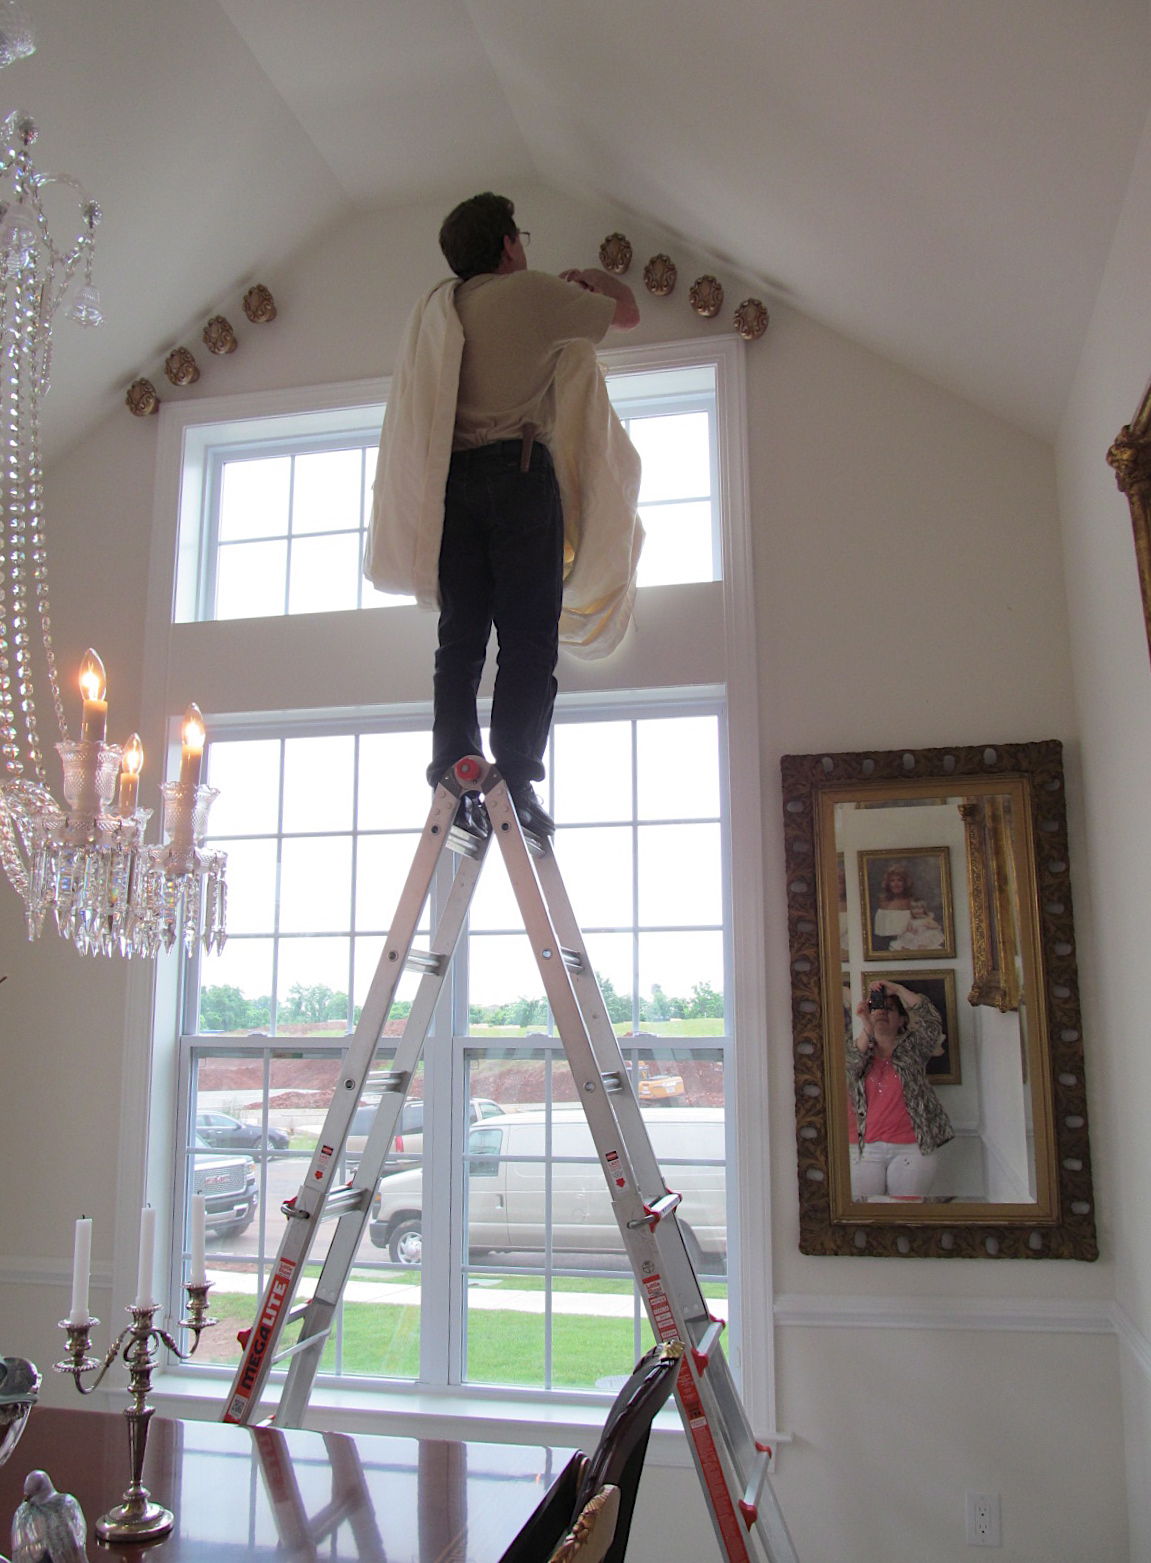 An installation work in progress from dePasquale Design